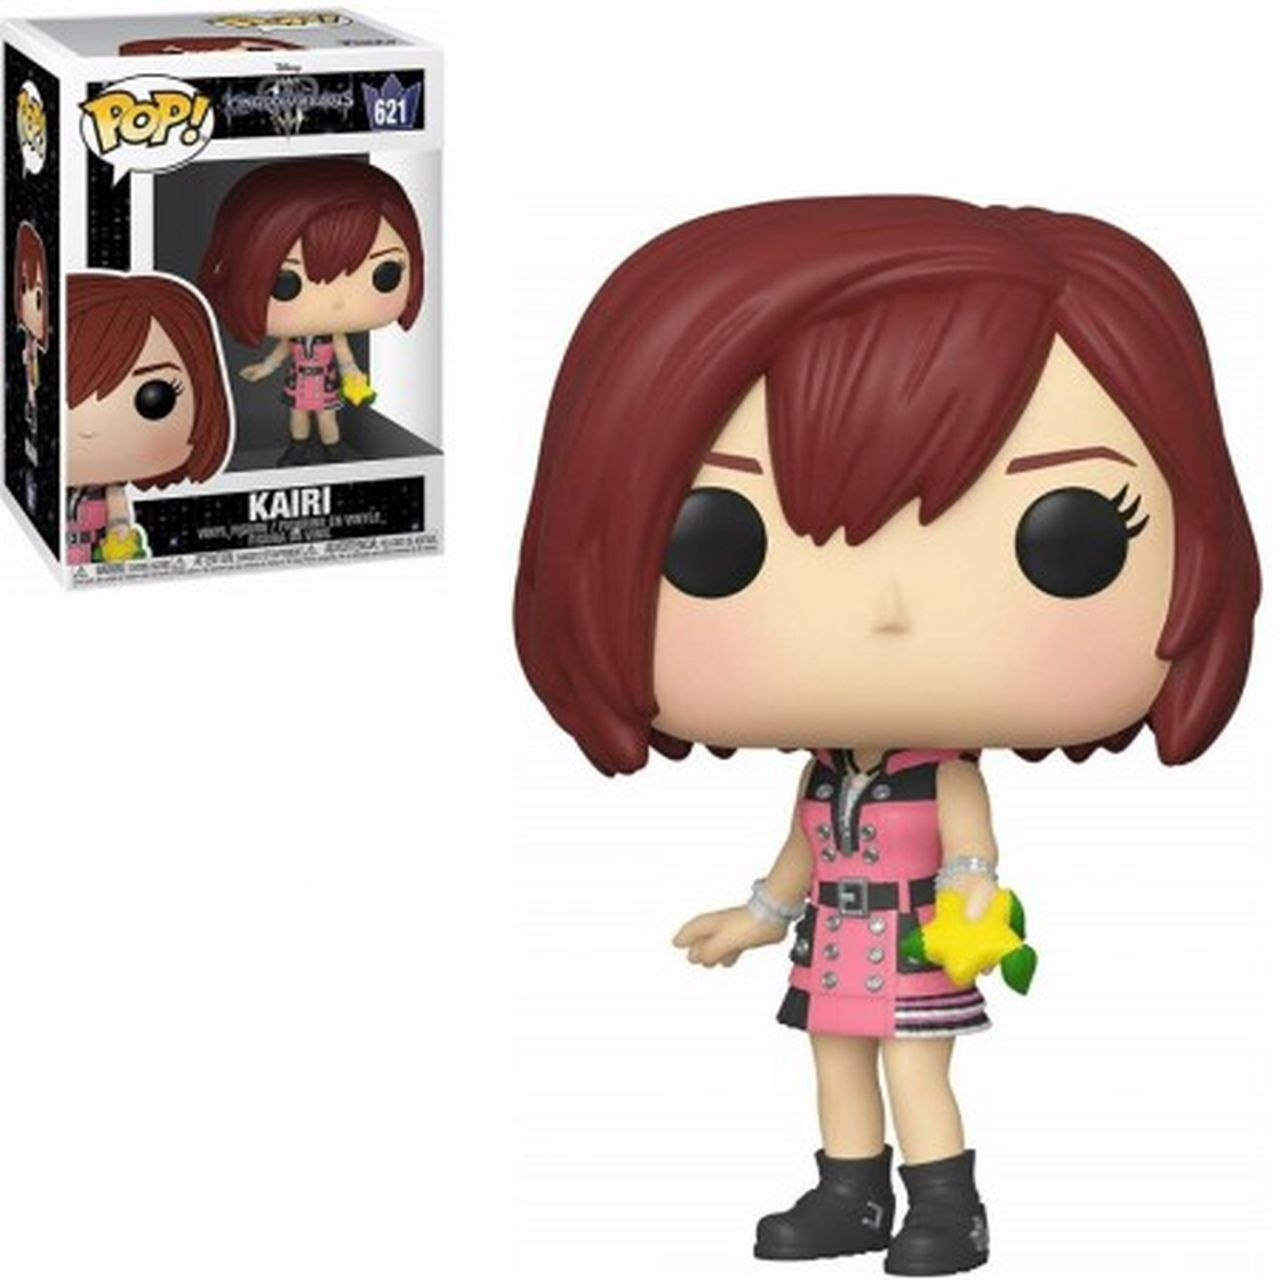 Funko Pop! Kairi: Kingdom Hearts III #621 - Funko